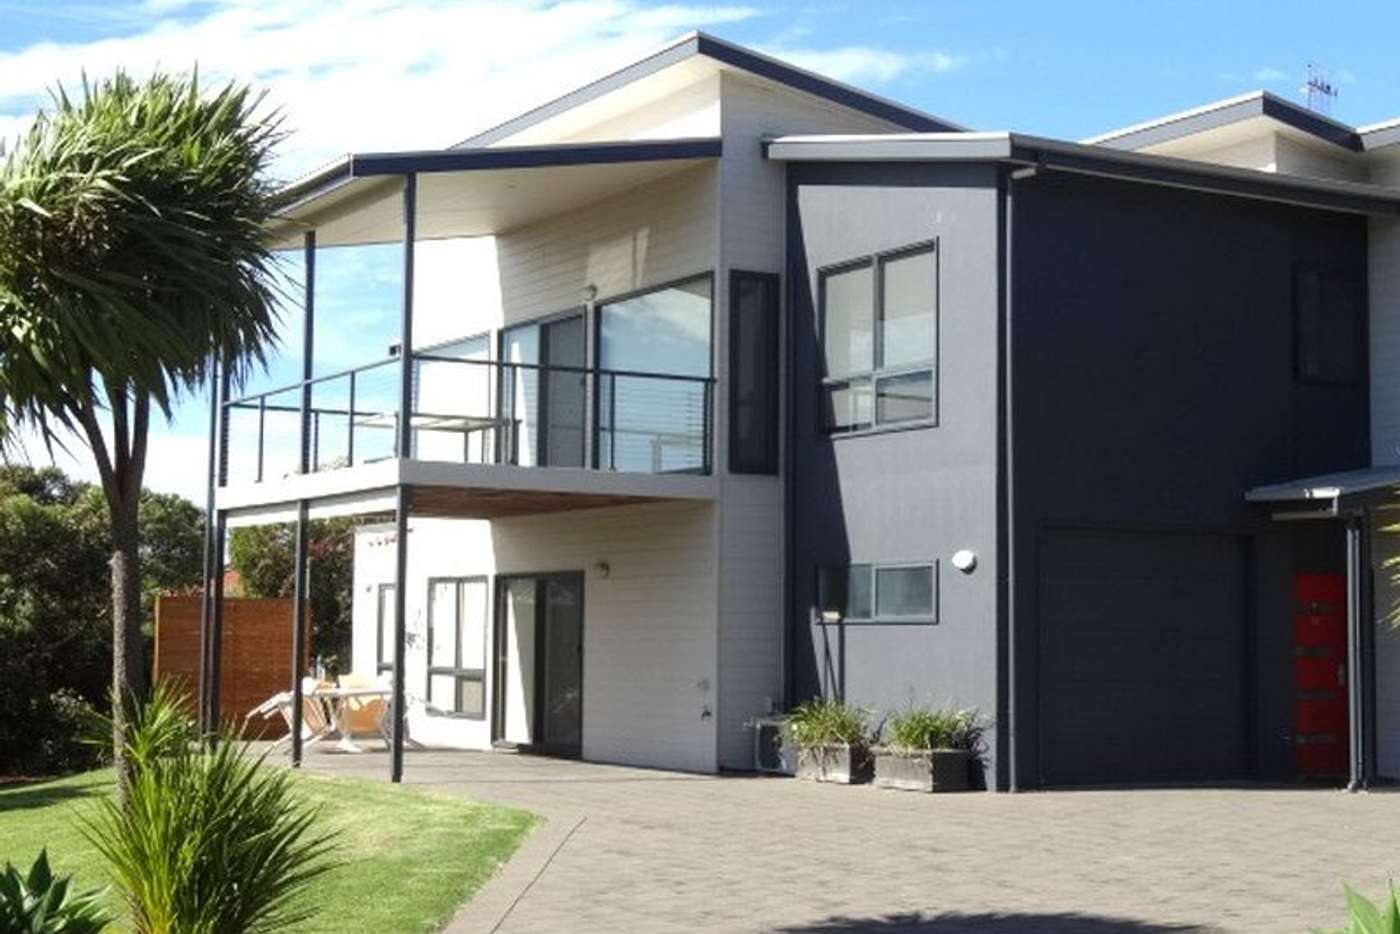 Main view of Homely house listing, 10 Olivebank Crescent, Encounter Bay SA 5211